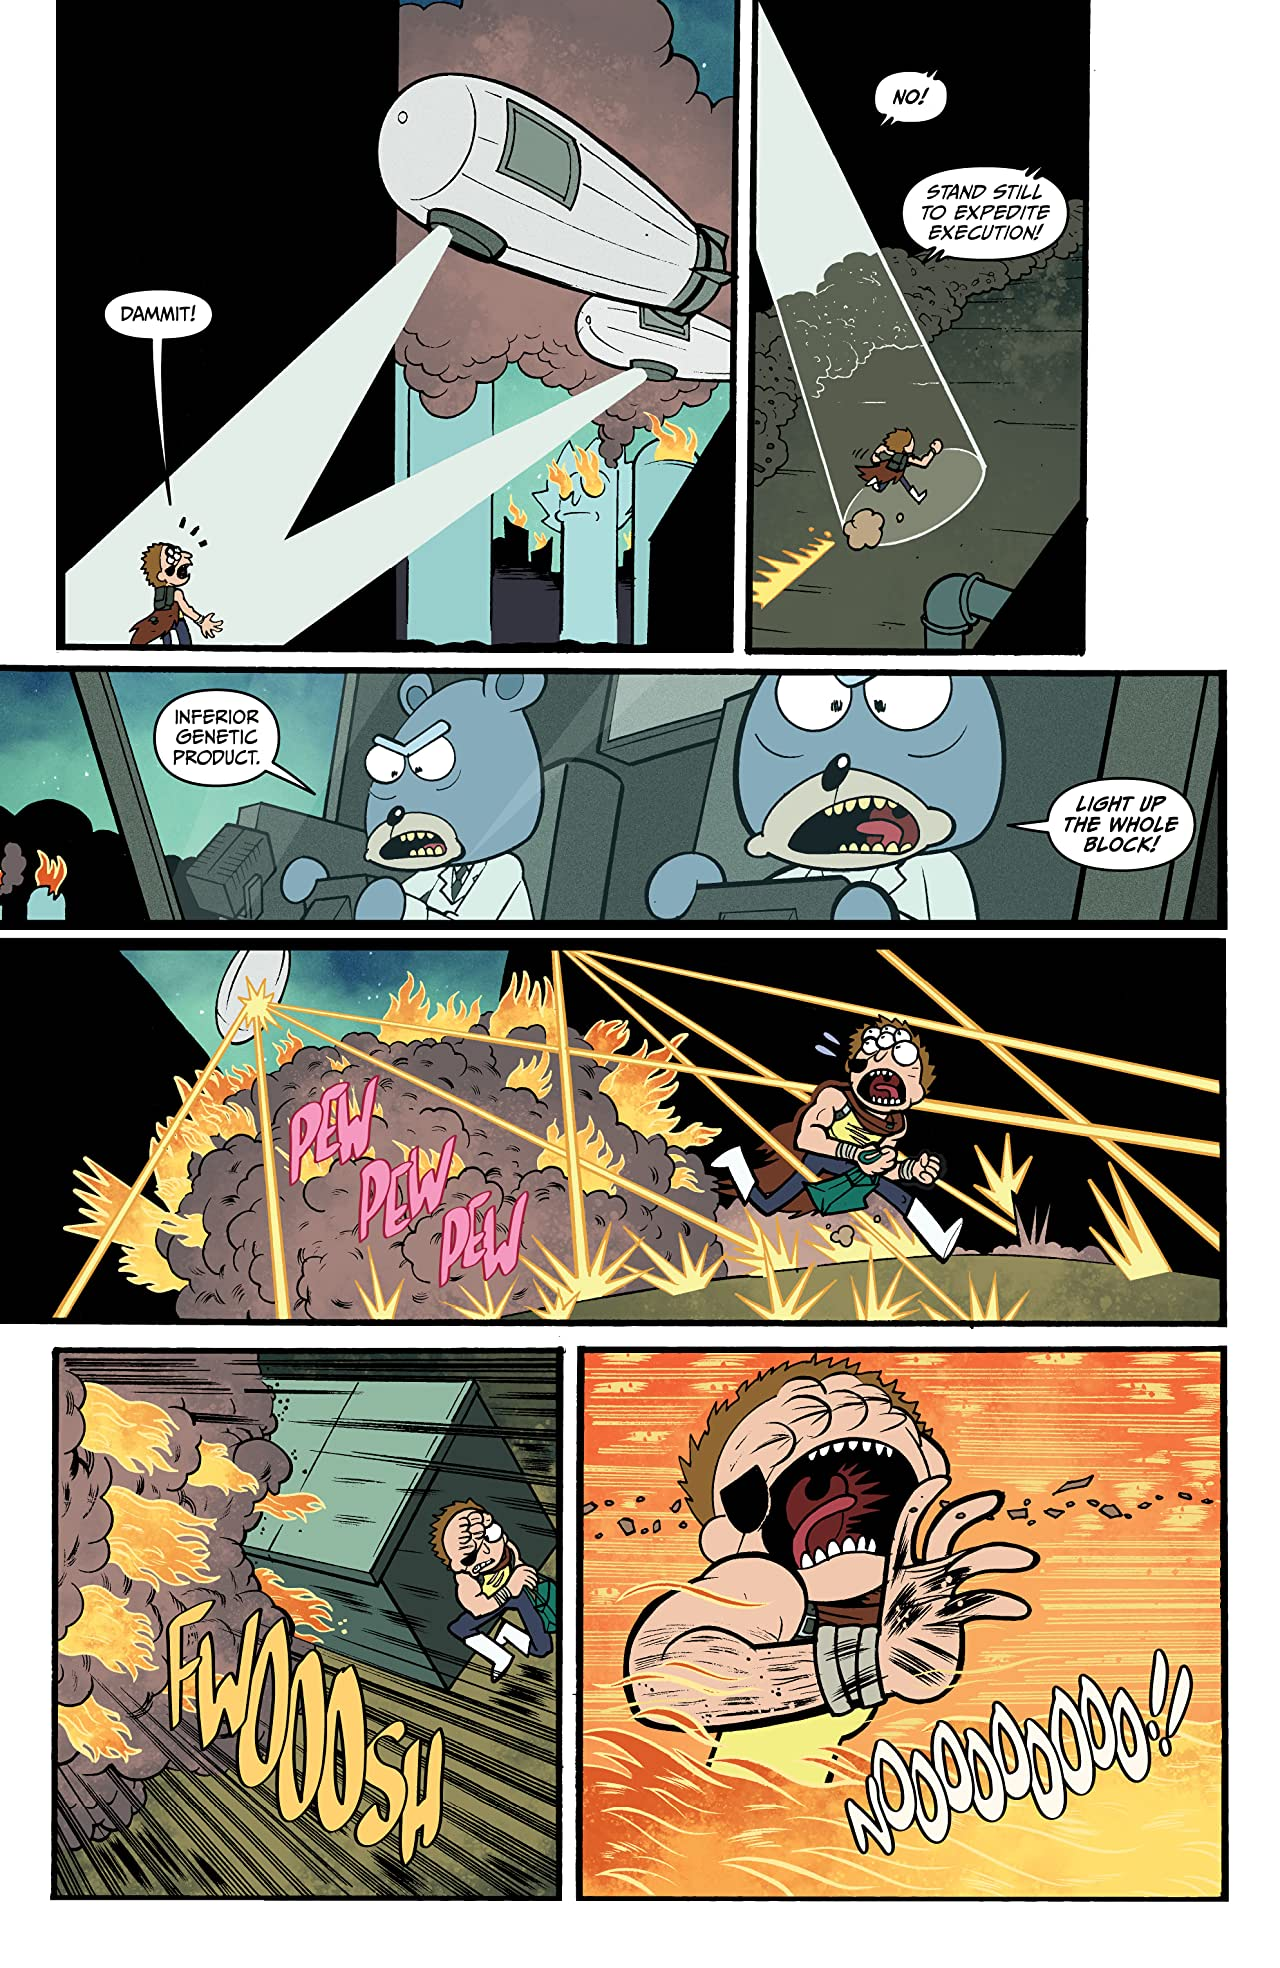 Rick and Morty #3: Worlds Apart